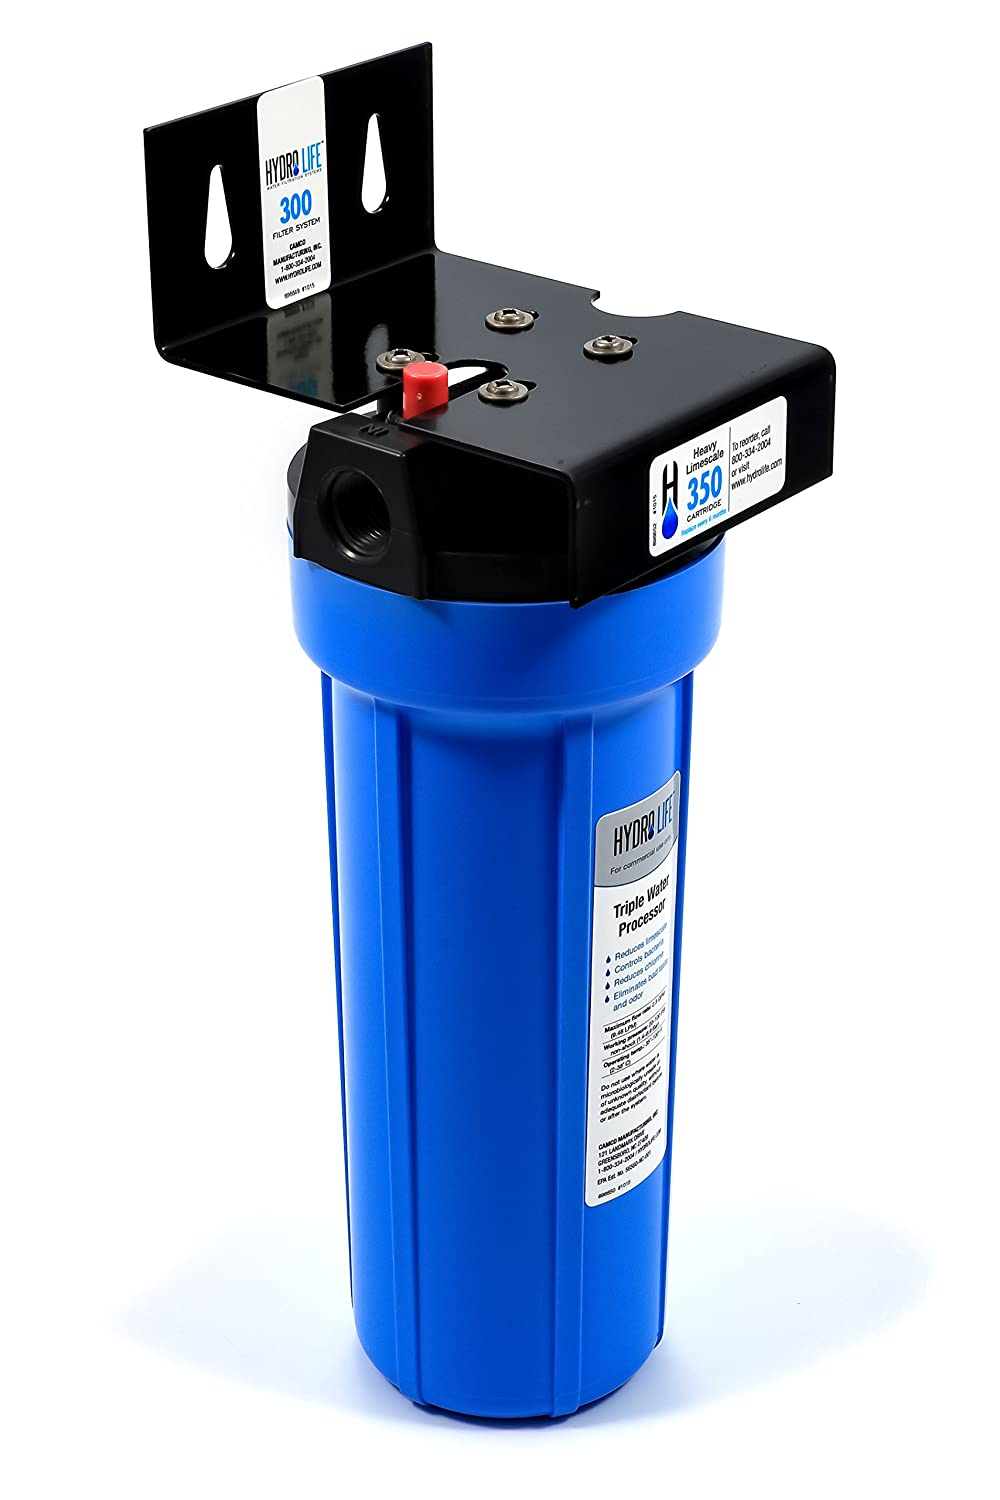 Hydro Life 52640 300 Series Model 300 Filtration System